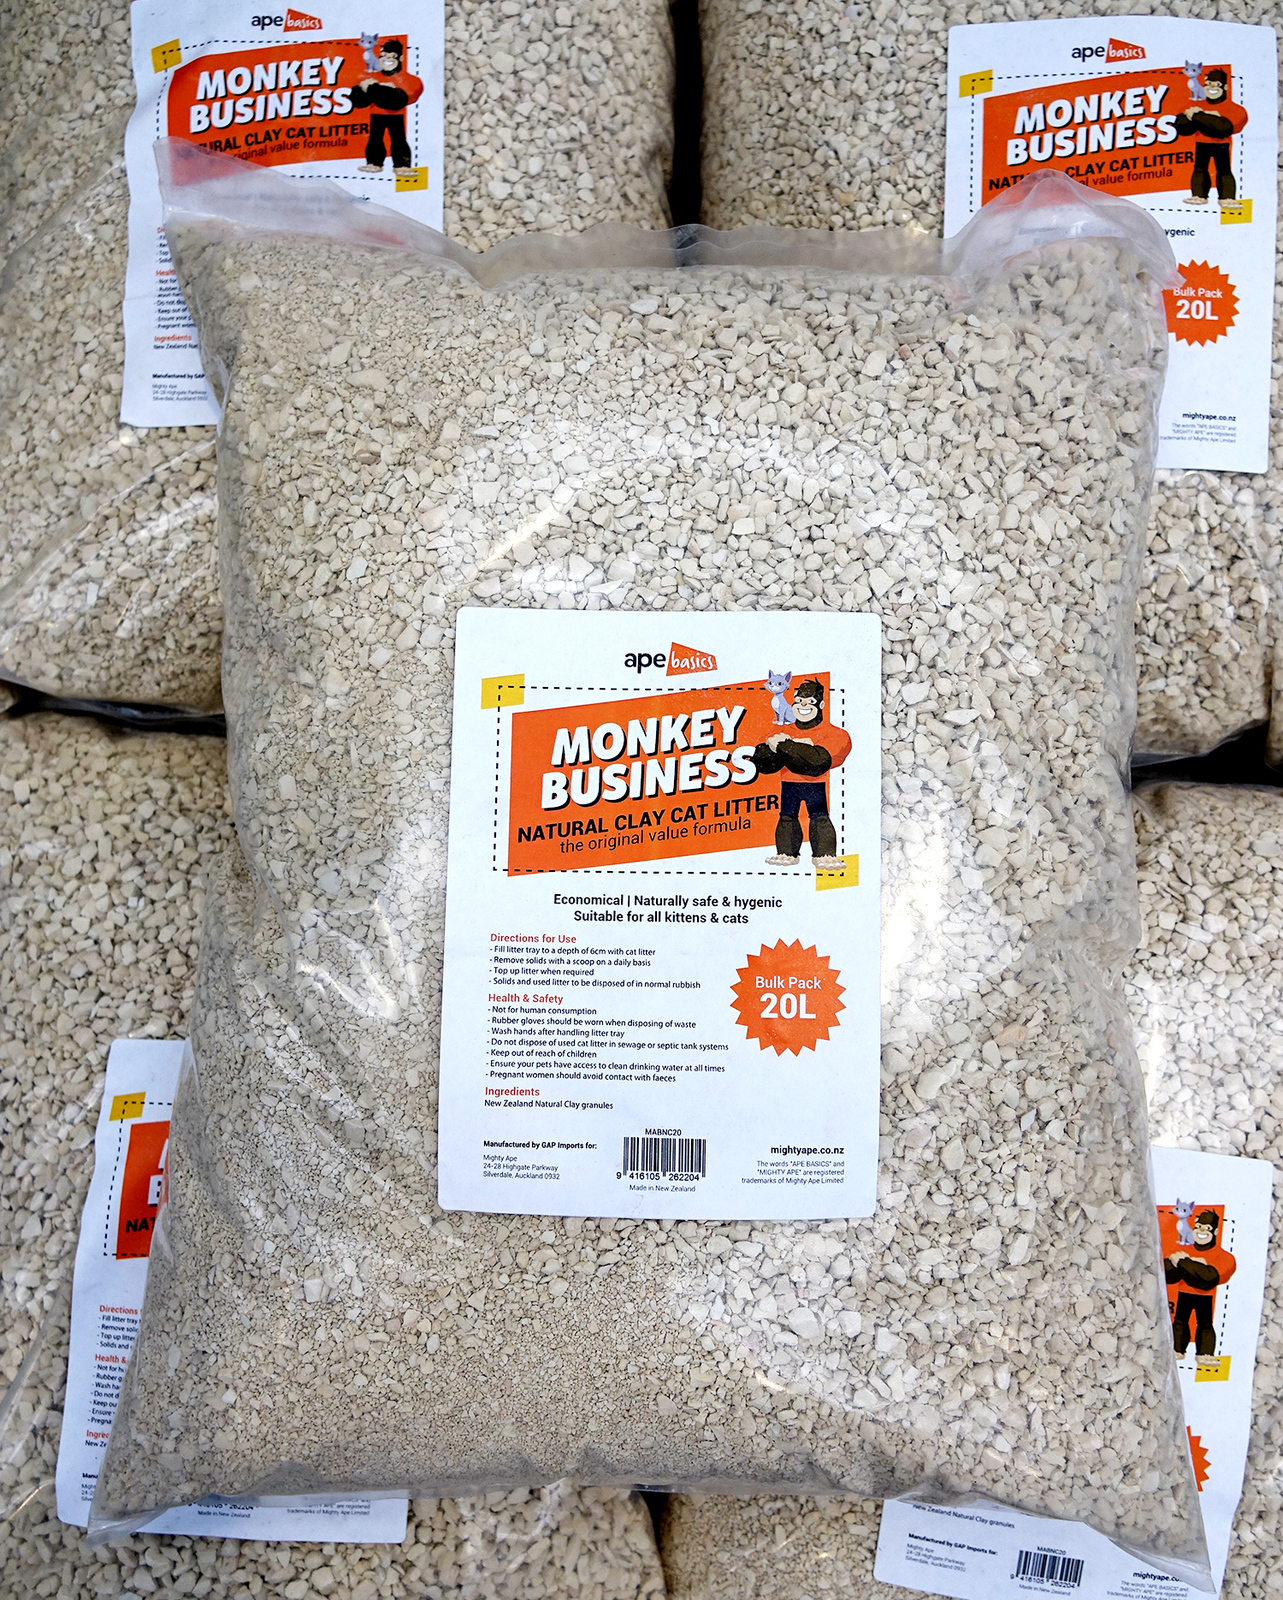 Monkey Business Cat Litter - Natural Clay (20L) image